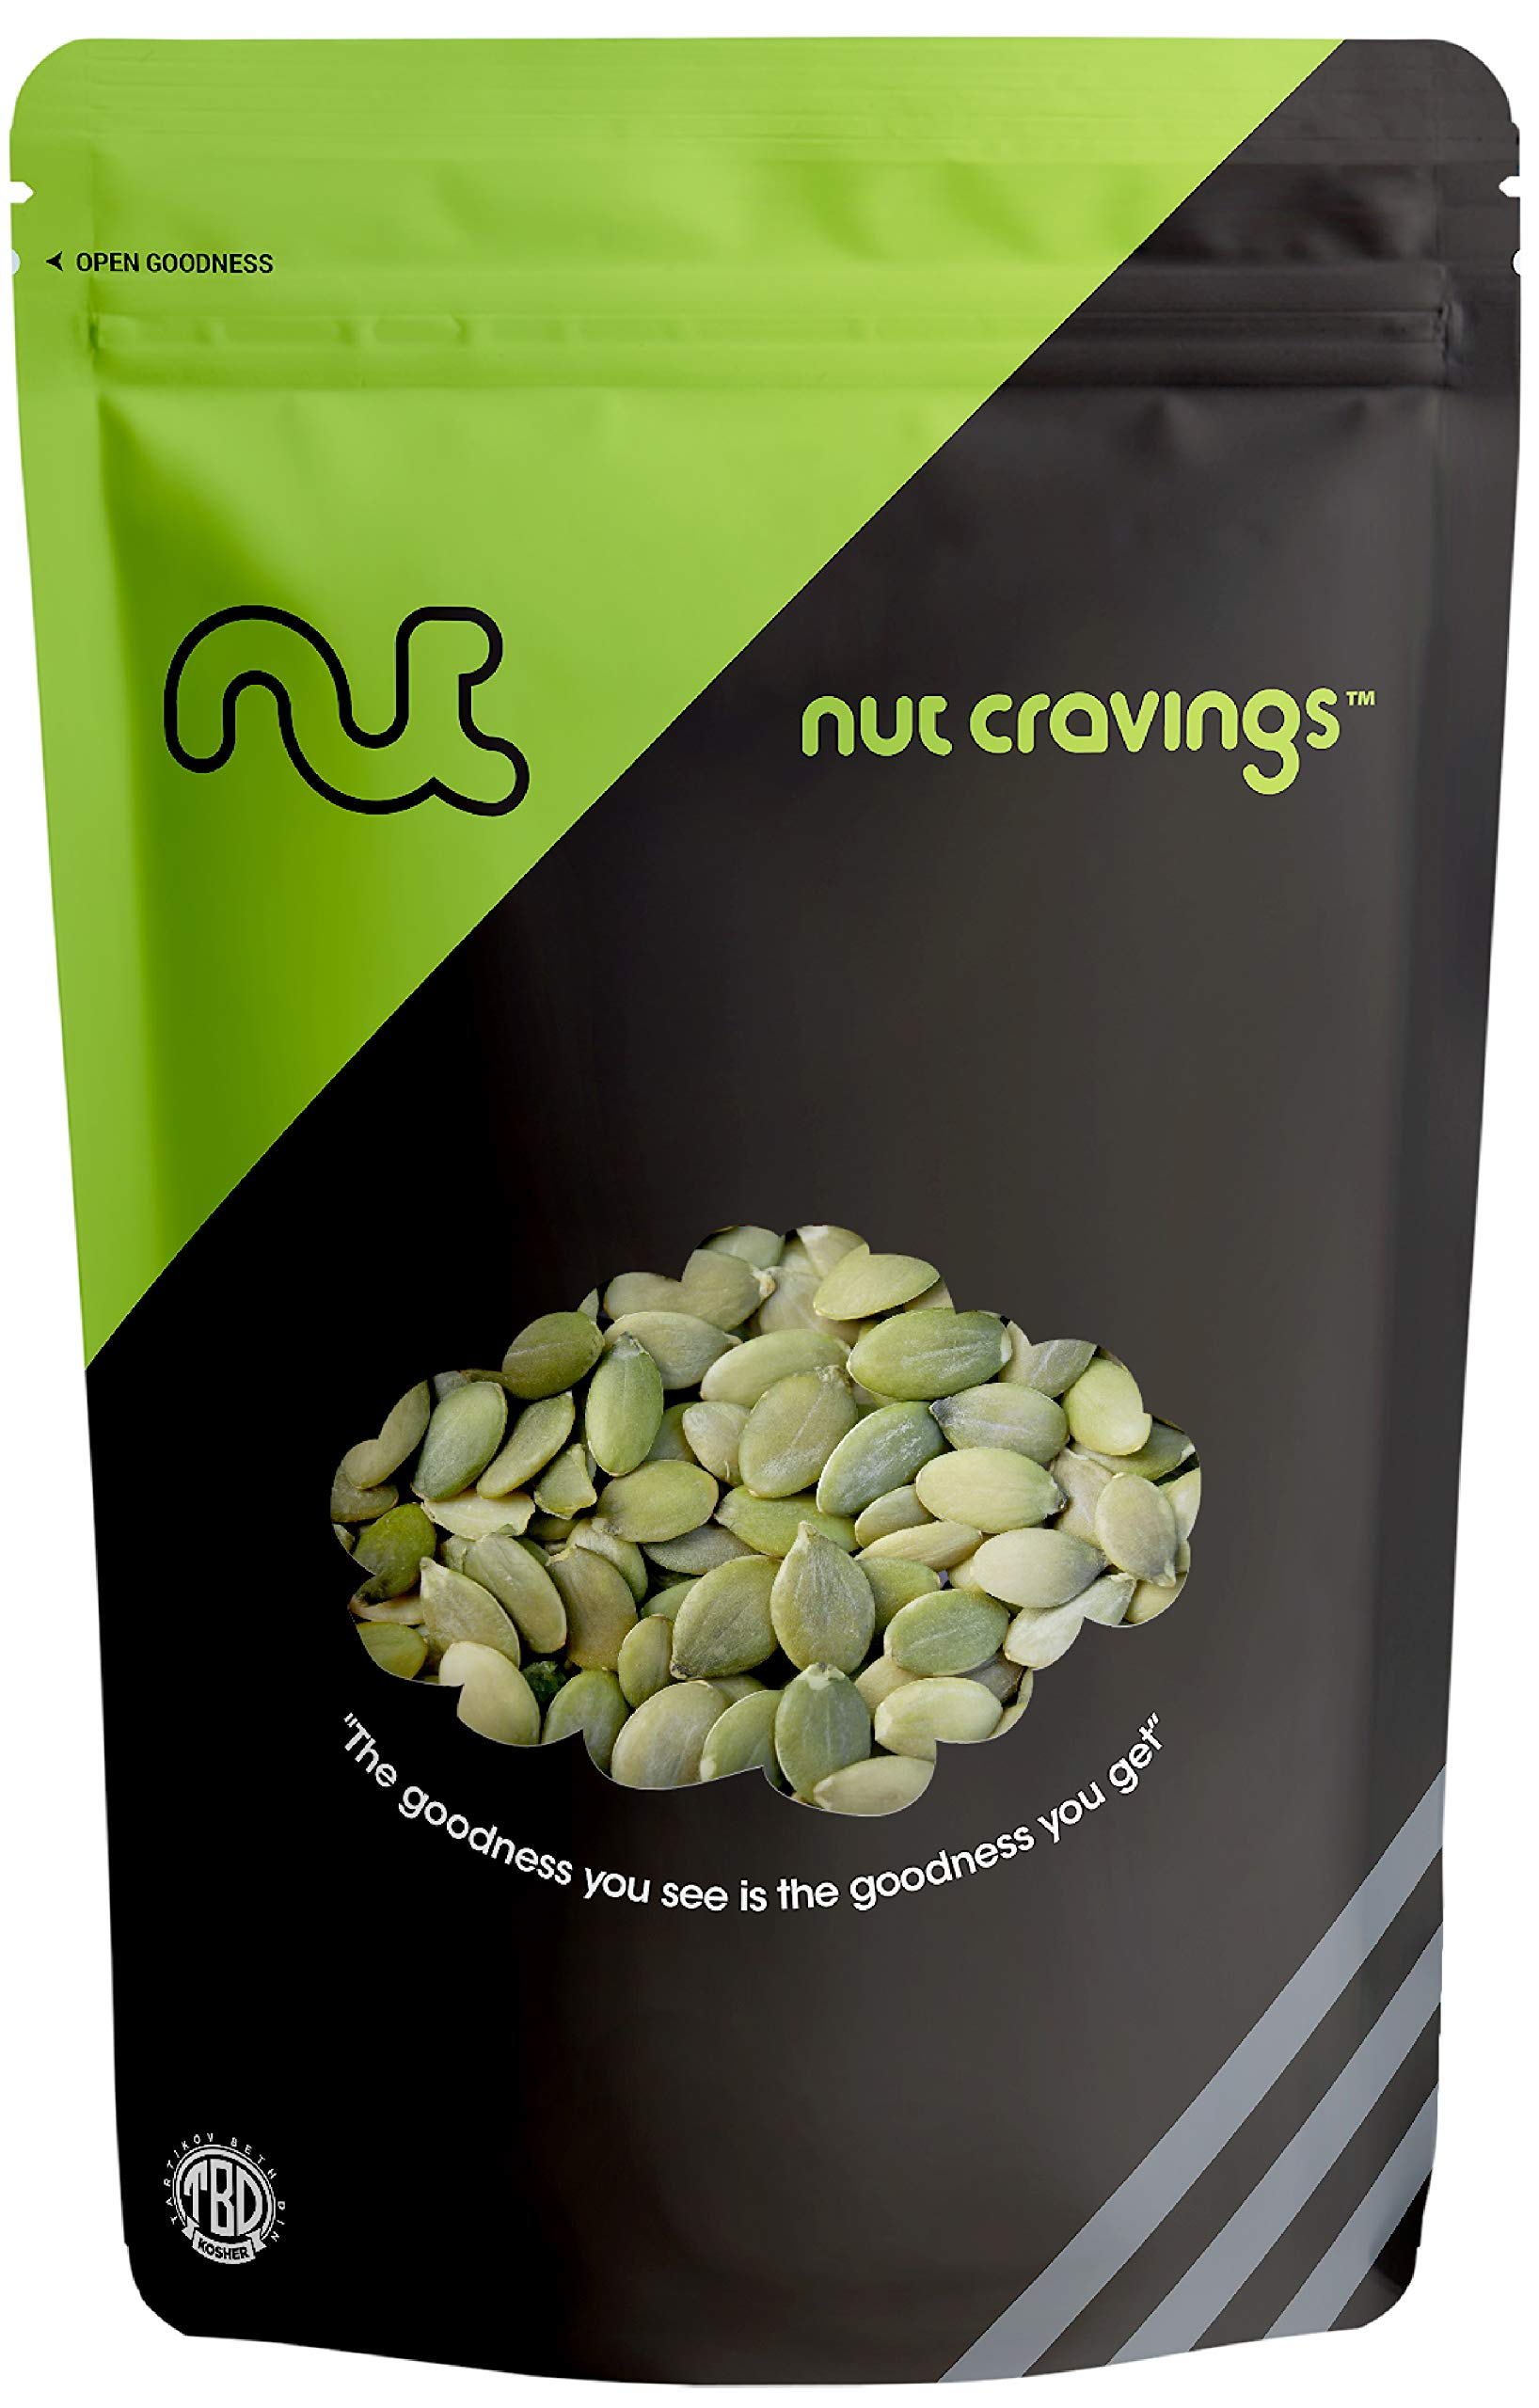 Nut Cravings - Raw Organic Pumpkin Seeds (4 Ounce) - Raw Pepitas With No Shell - SAMPLER PACK by Nut Cravings